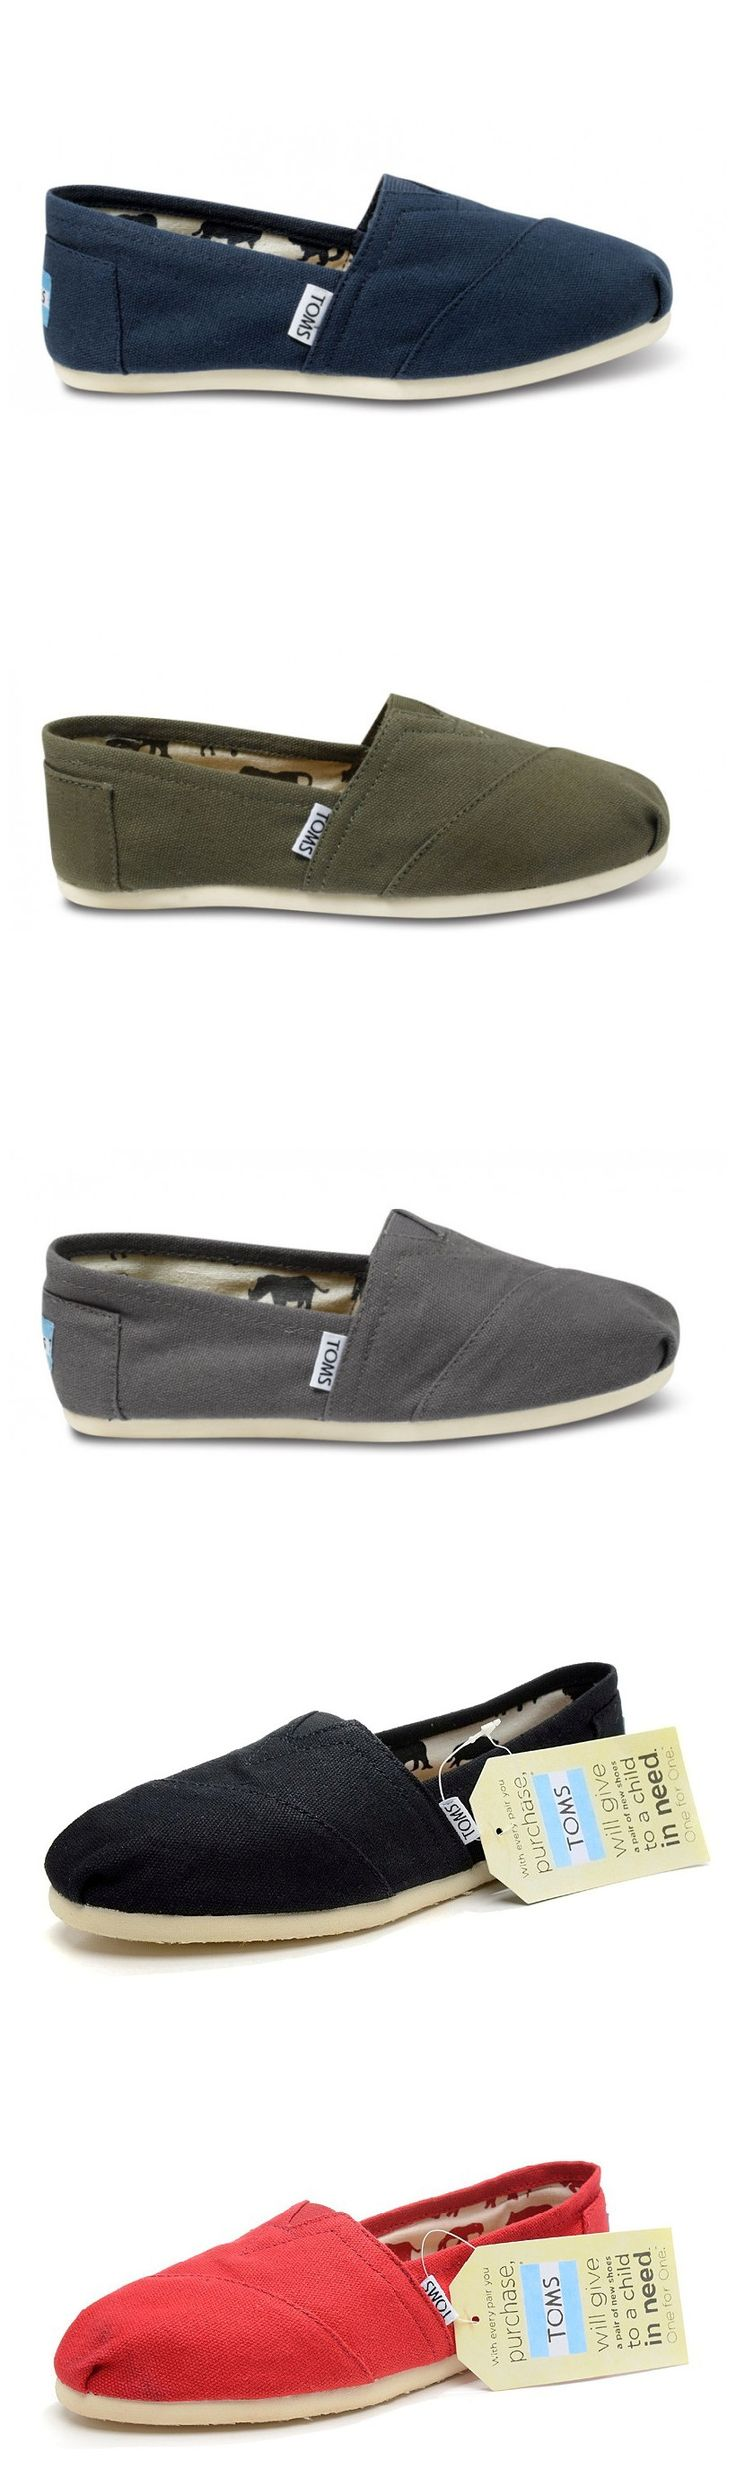 Dream closet| Toms Outlet! $17 OMG!! Holy cow, I'm gonna love this site #Toms shoes #shoes #fashion